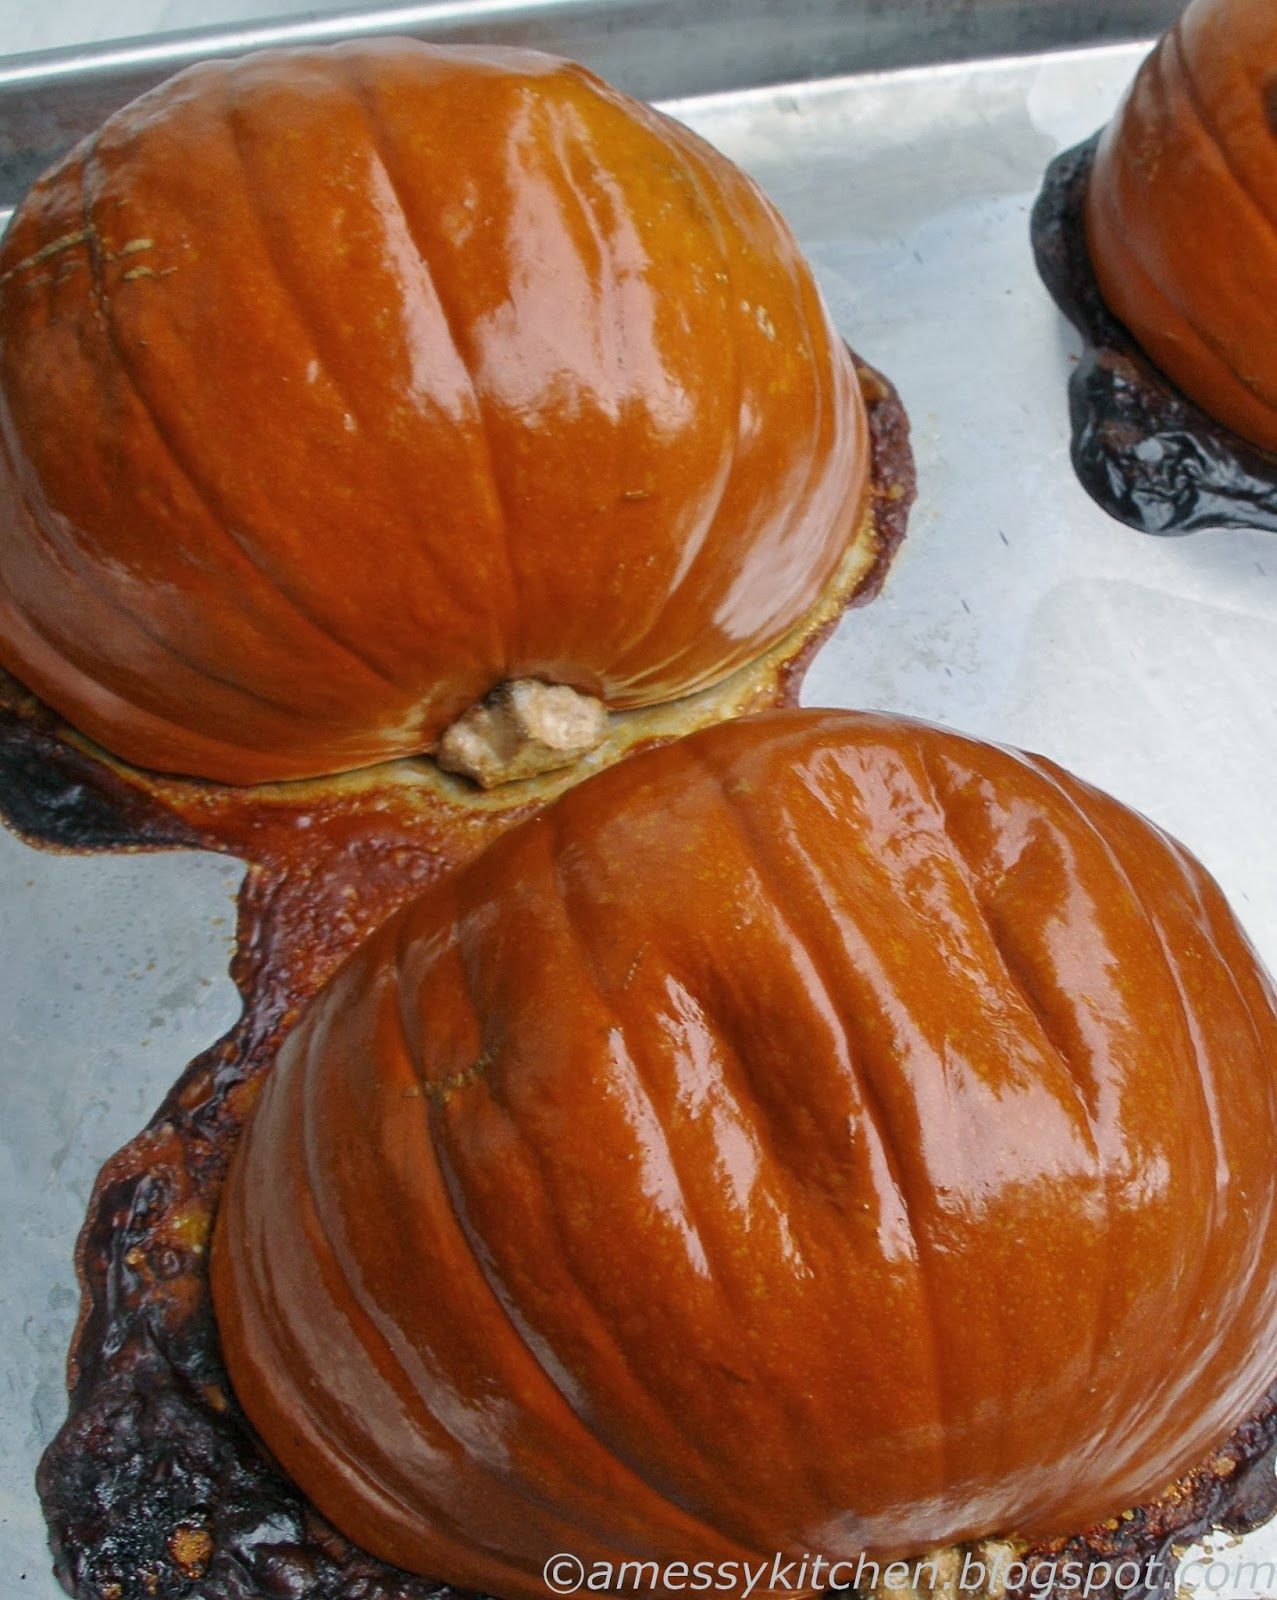 Messy Kitchen: Pumpkin butter and Easy Pumpkin Puree